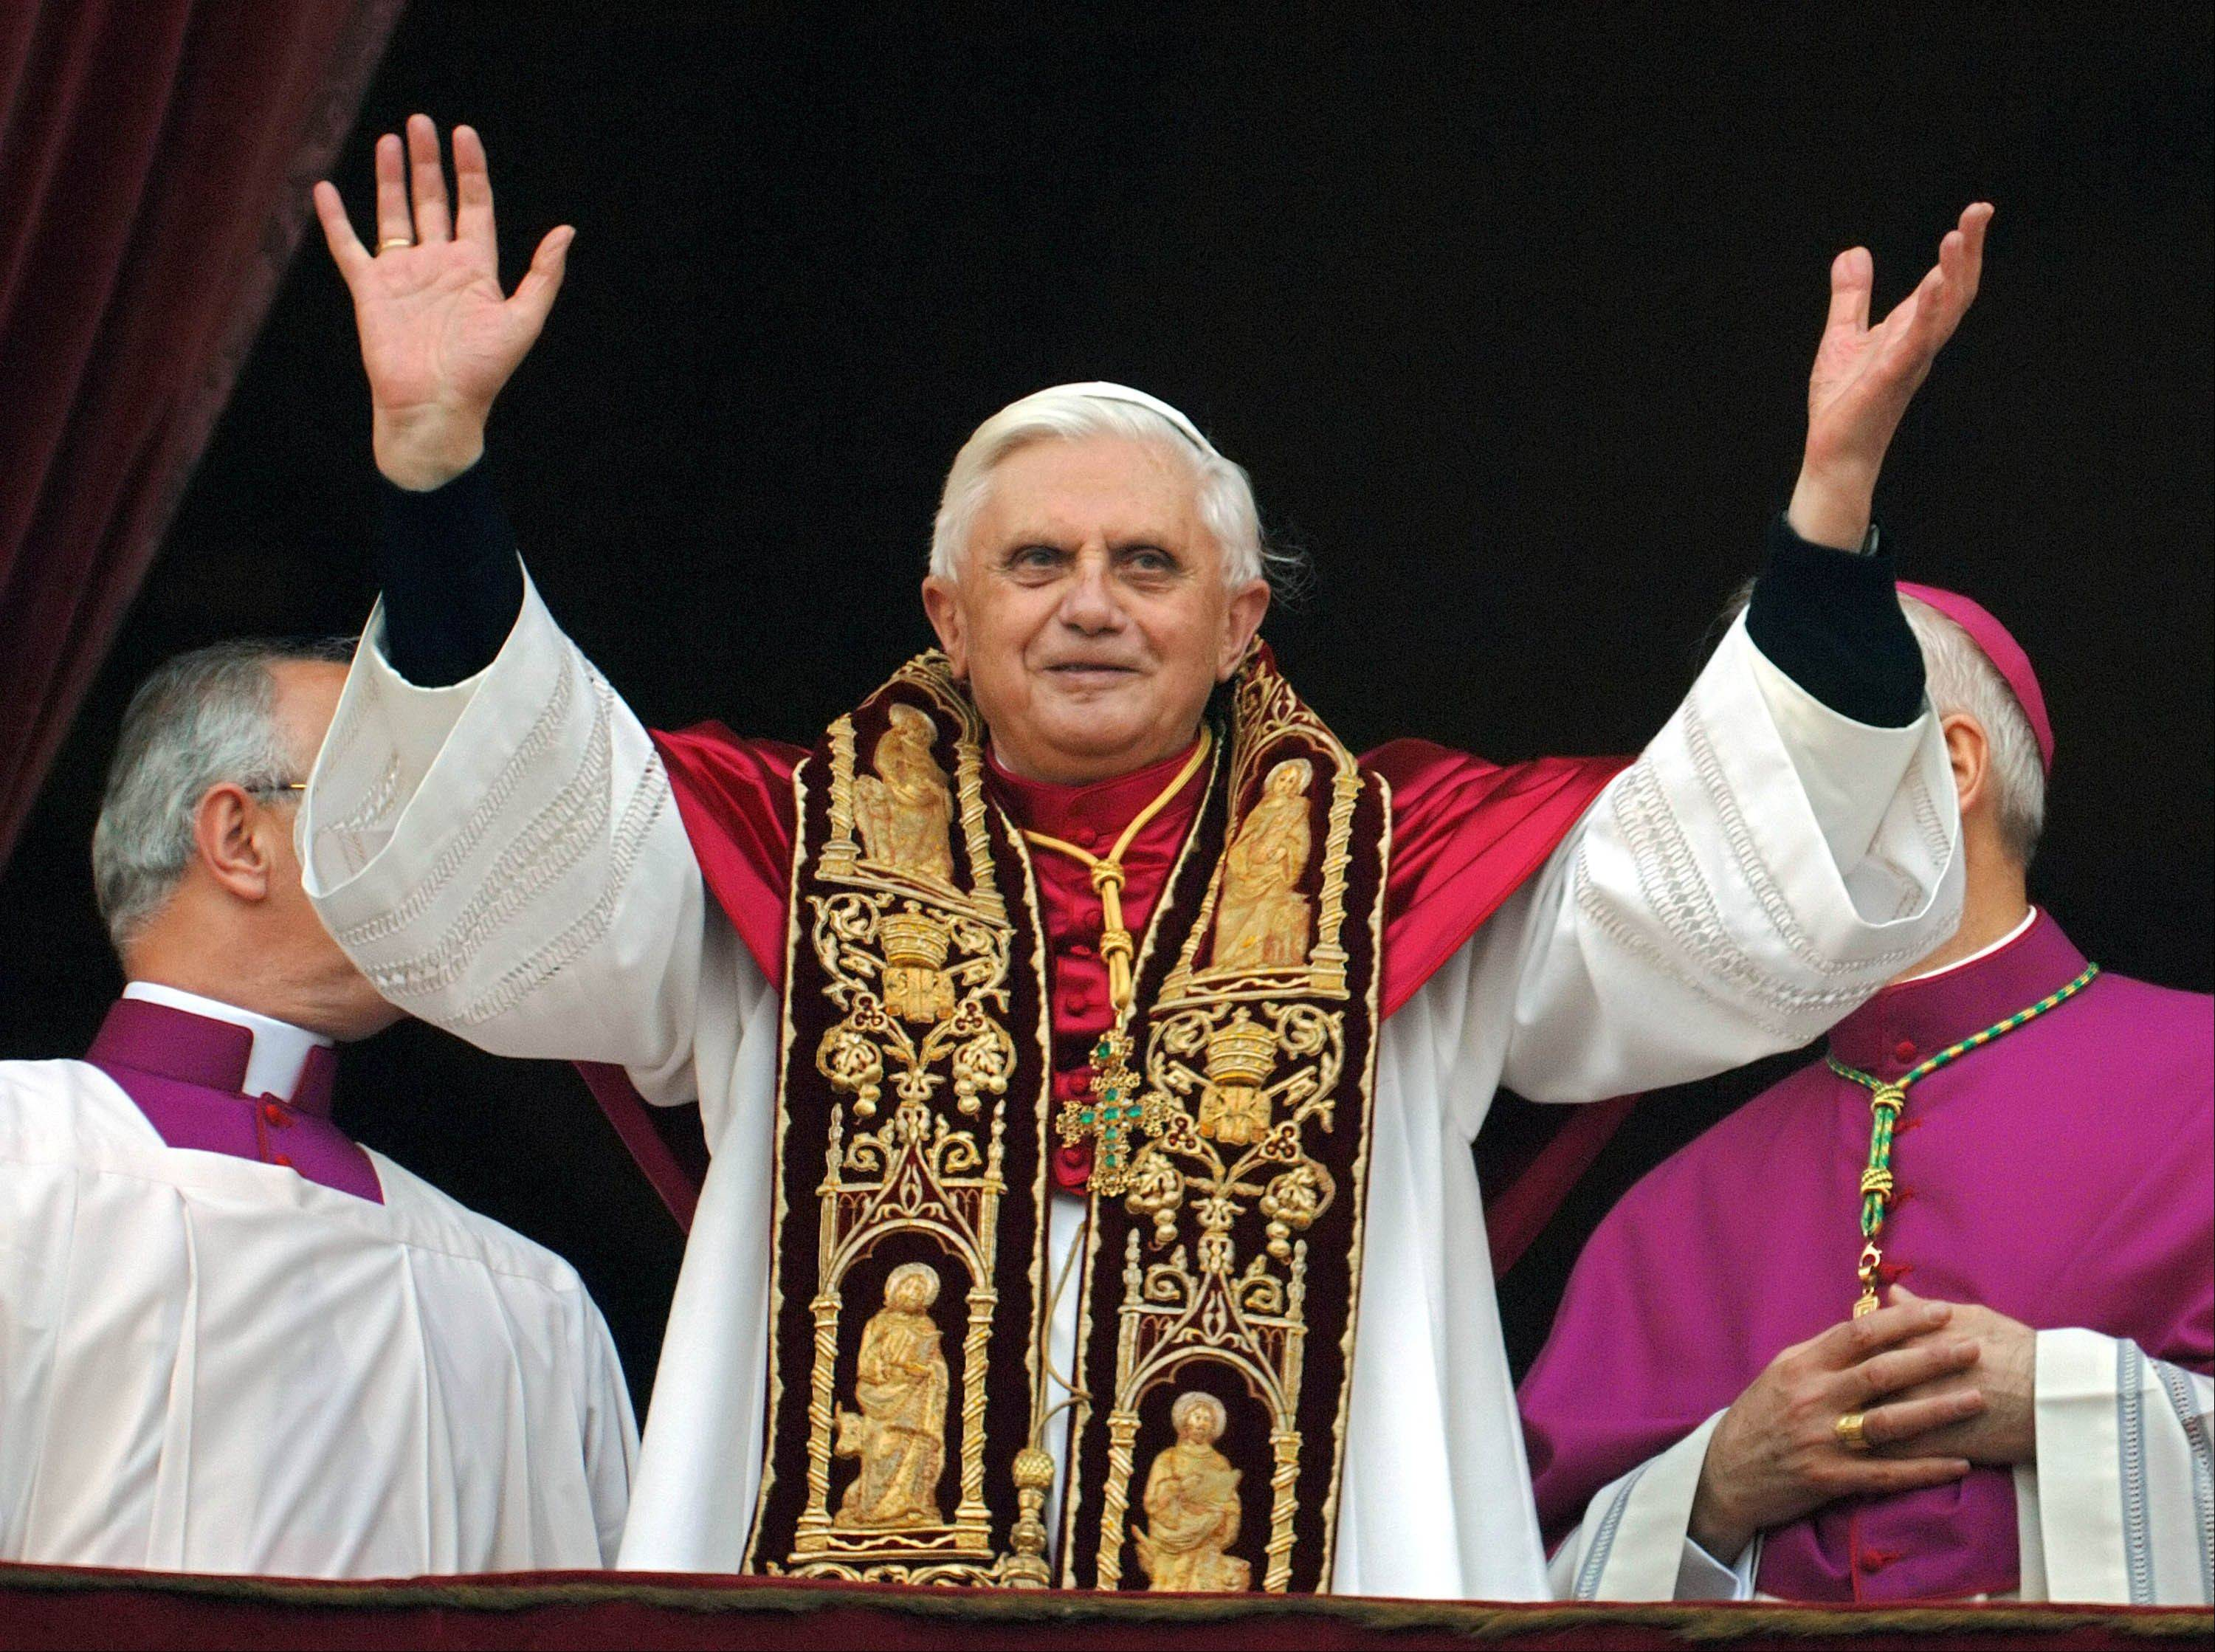 Pope Benedict XVI greets the crowd from the central balcony of St. Peter's Basilica moments after being elected at the Vatican.